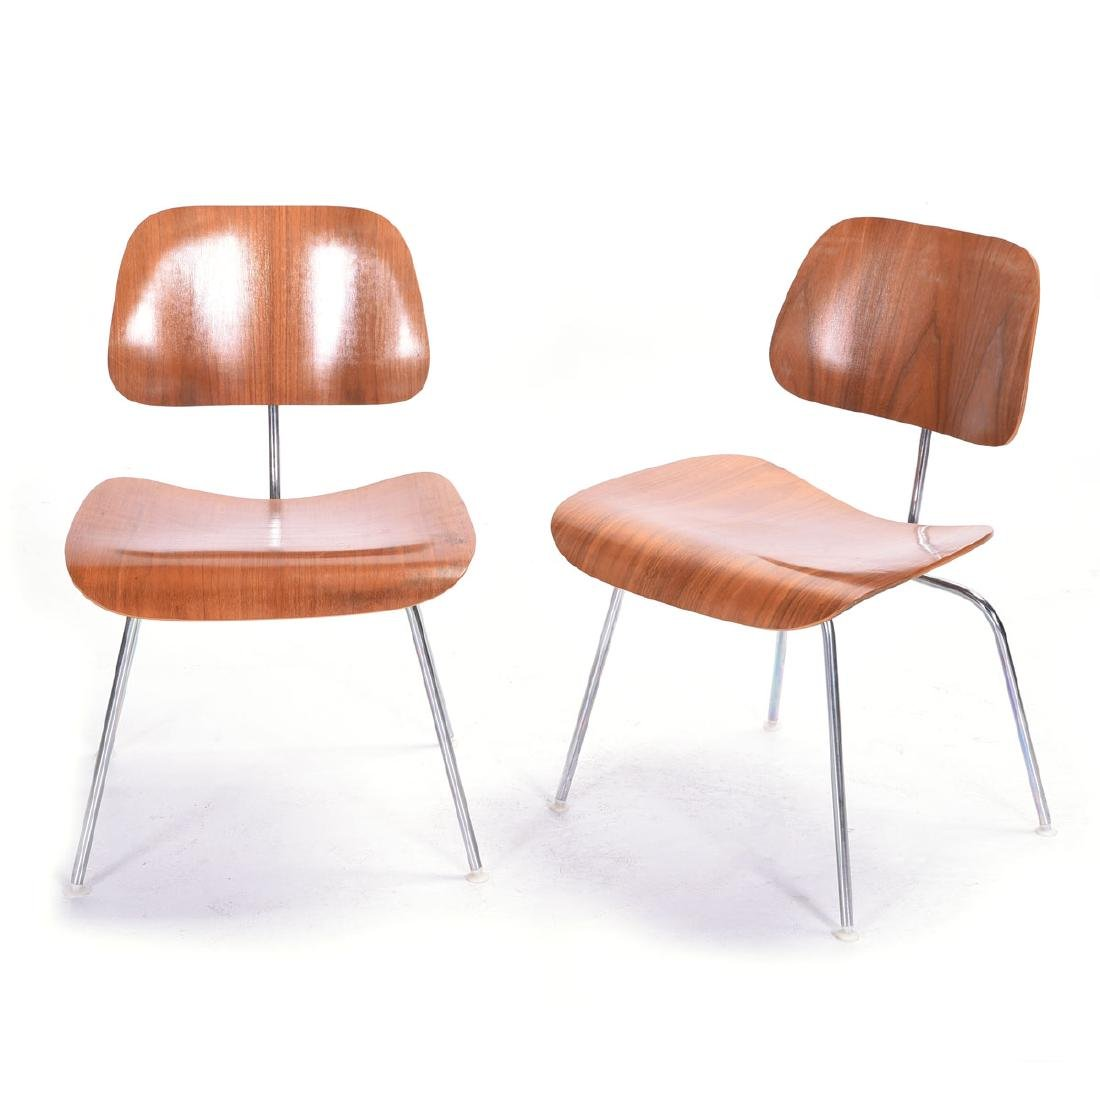 Six Charles Eames for Herman Miller DCM Ash Plywood